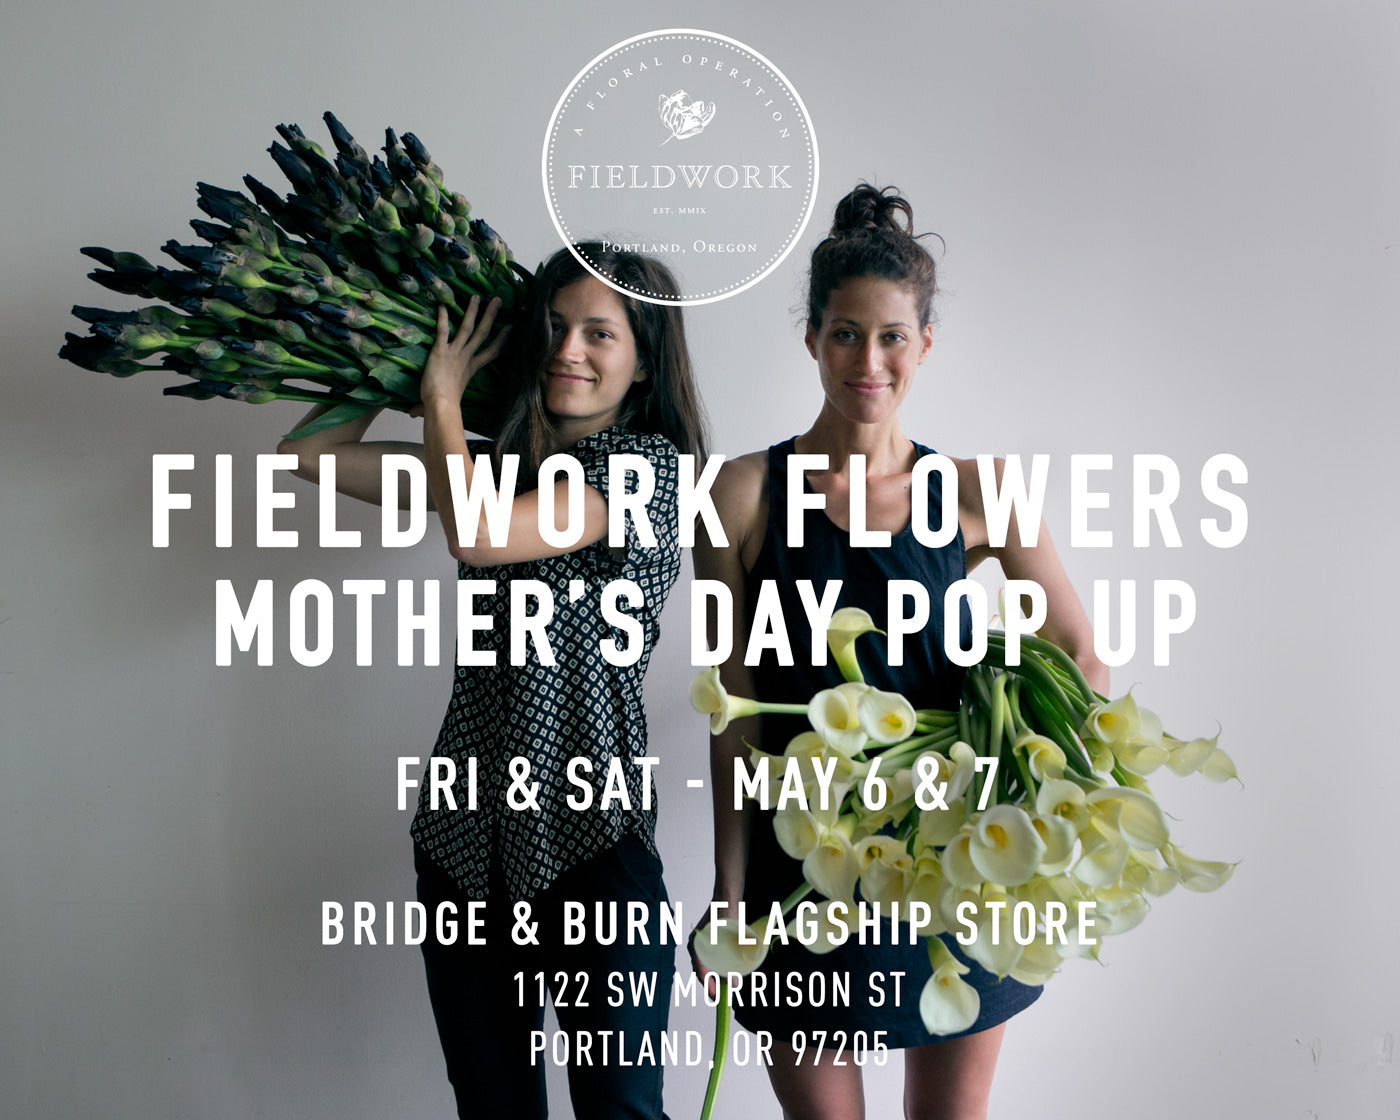 Fieldwork Flowers - Floral Bouquets and Arrangements - Portland, OR